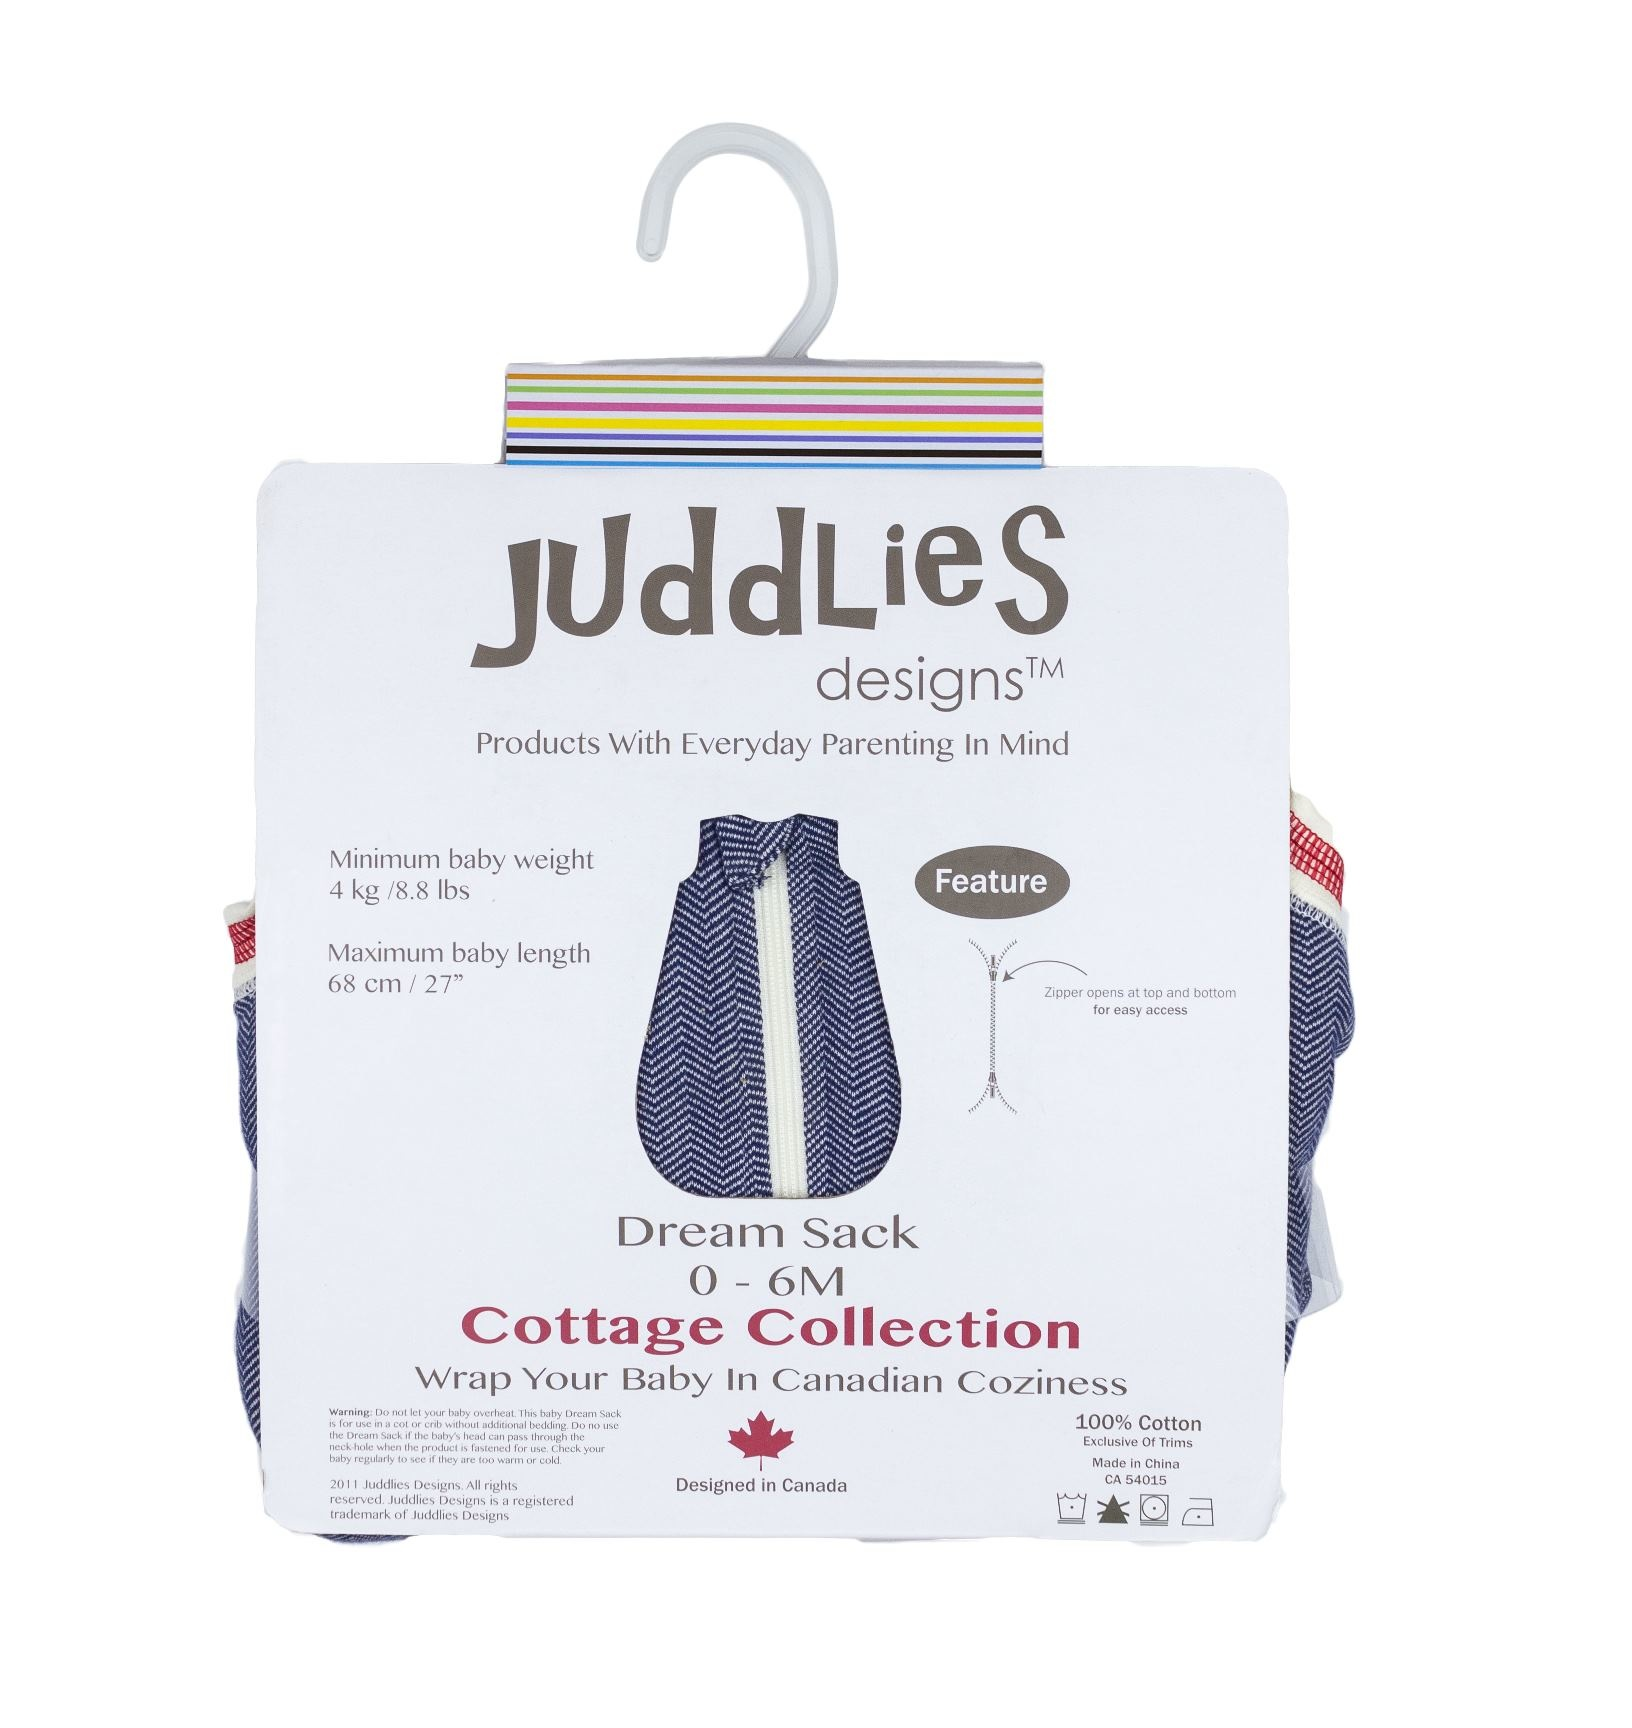 Juddlies Cottage dream sack